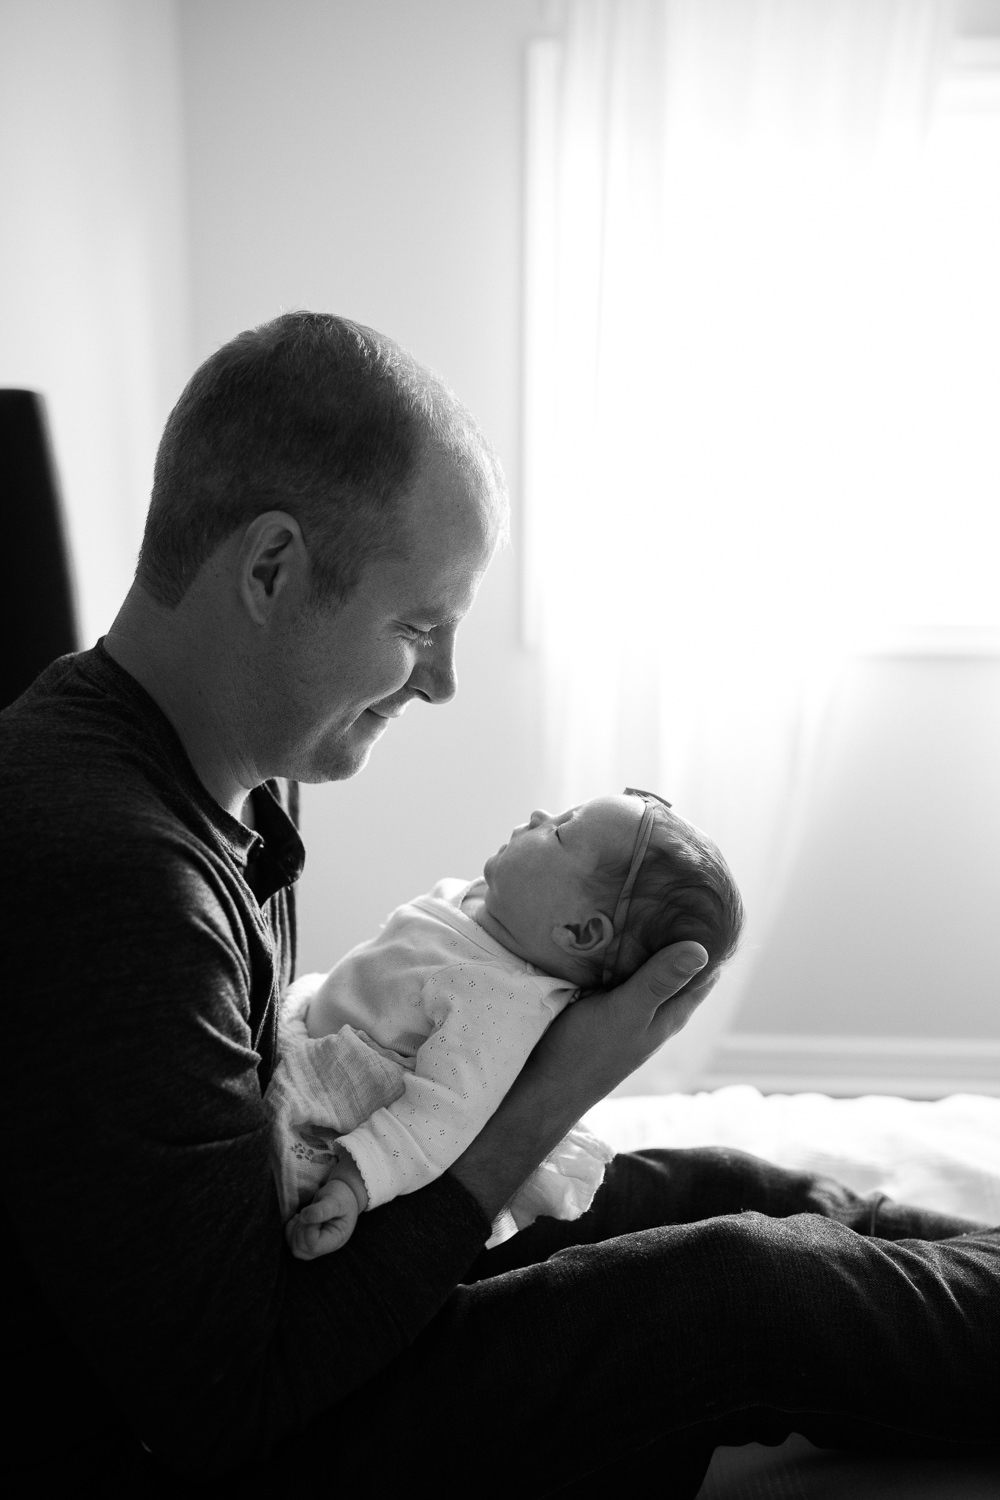 dad sitting on master bed holding 2 week old baby girl's head in his hands, smiling at her, daughter in white onesie with headband on -York Region In-Home Photography